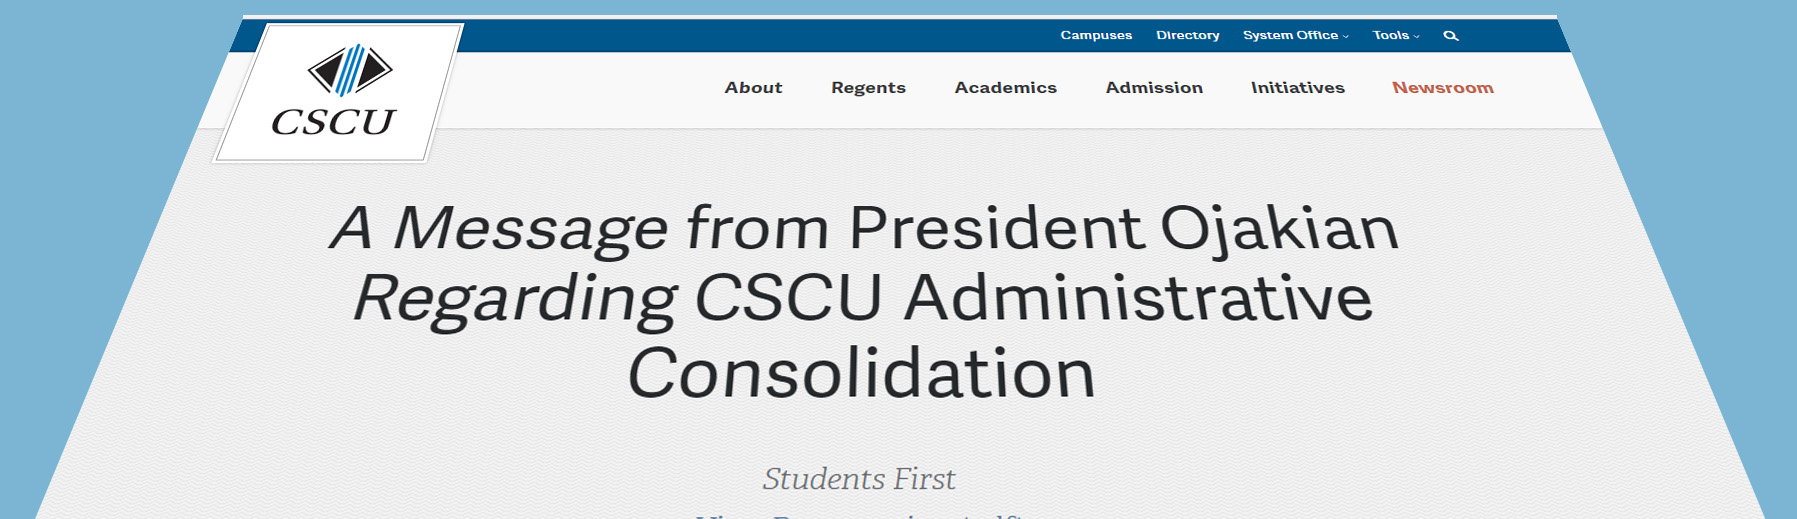 Neediest students first to be sacrificed in CSCU consolidation 'plan'